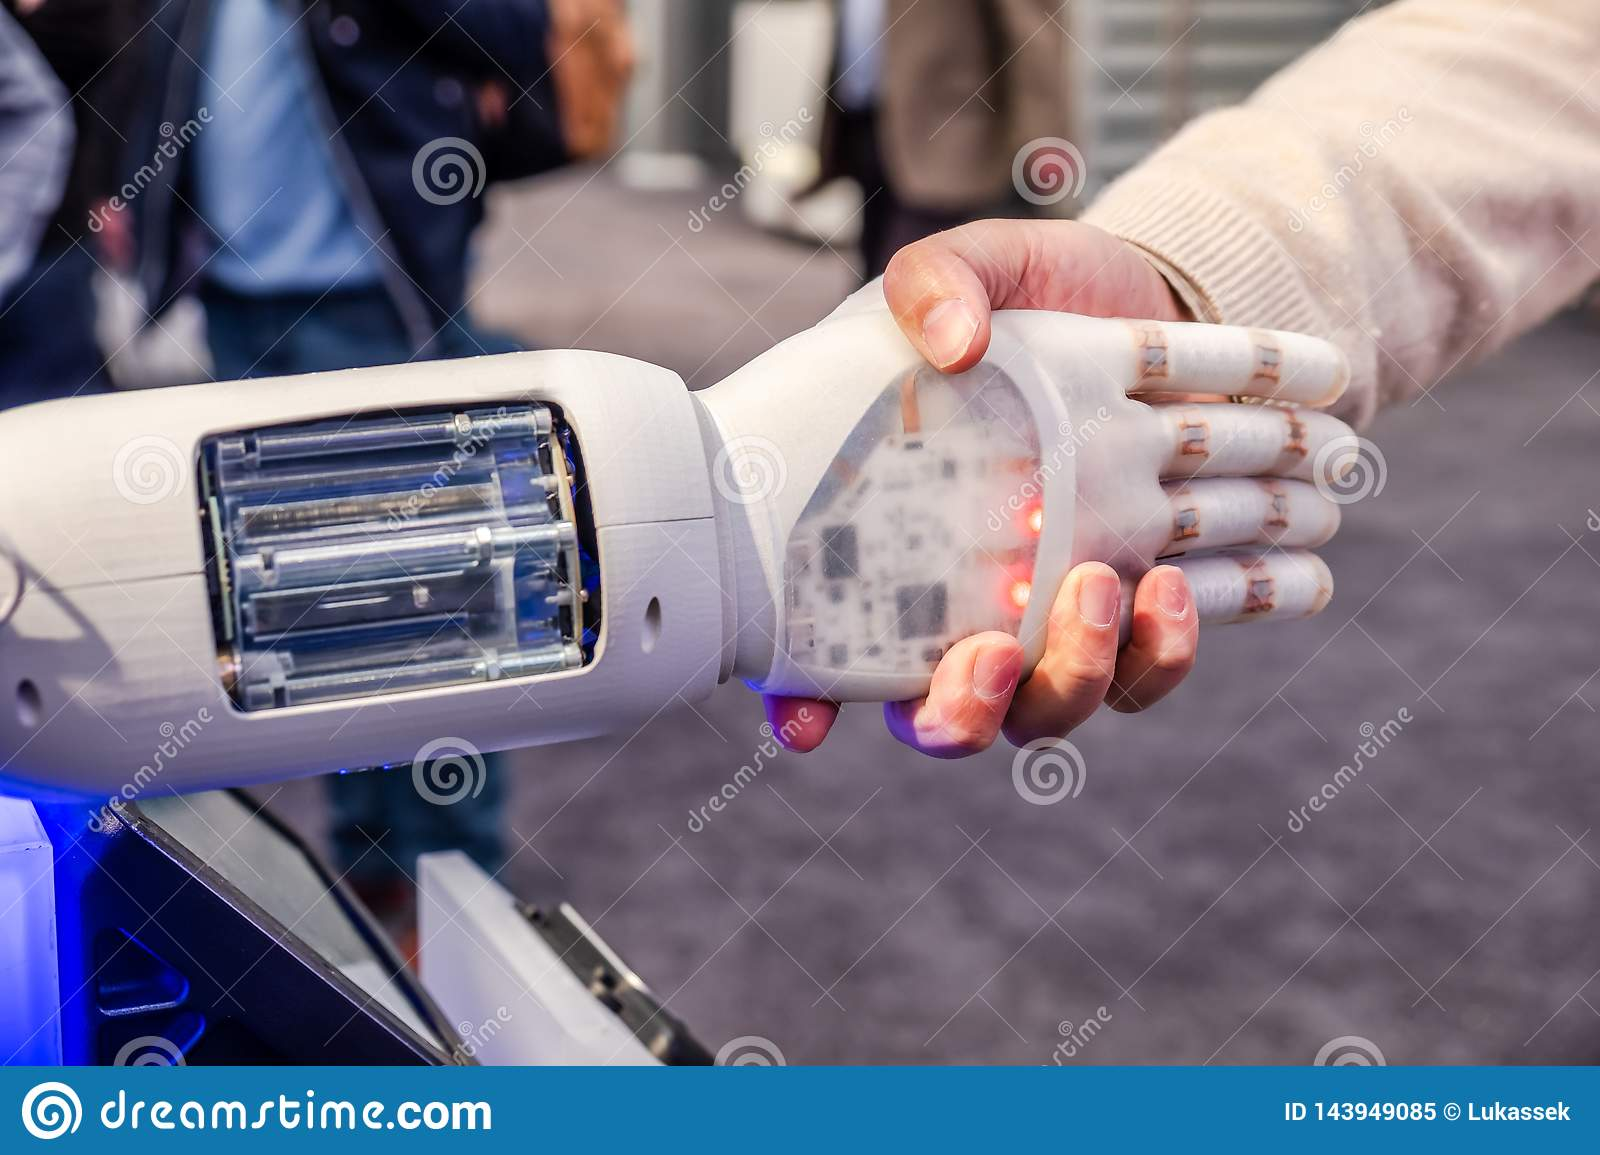 Human hand and robot`s as a symbol of connection between people and artificial intelligence technology